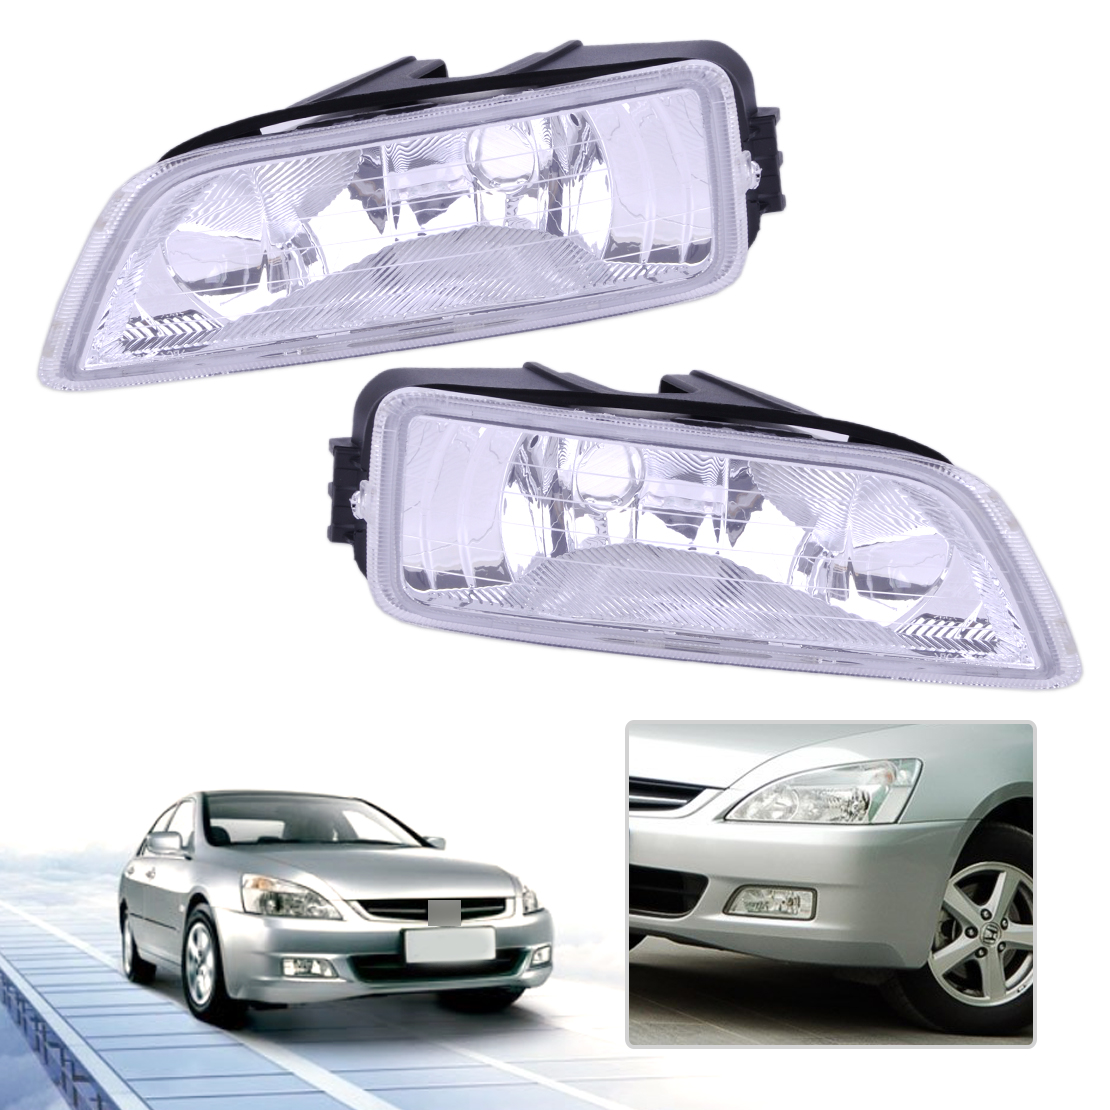 CITALL Front Right + Left Fog Light Lamp Cover Shell 33951-SDA-H01 33901-SDA-H01 Fit for Honda Accord 2003 2004 2005 2006 2007 н р 3 пр з пляски